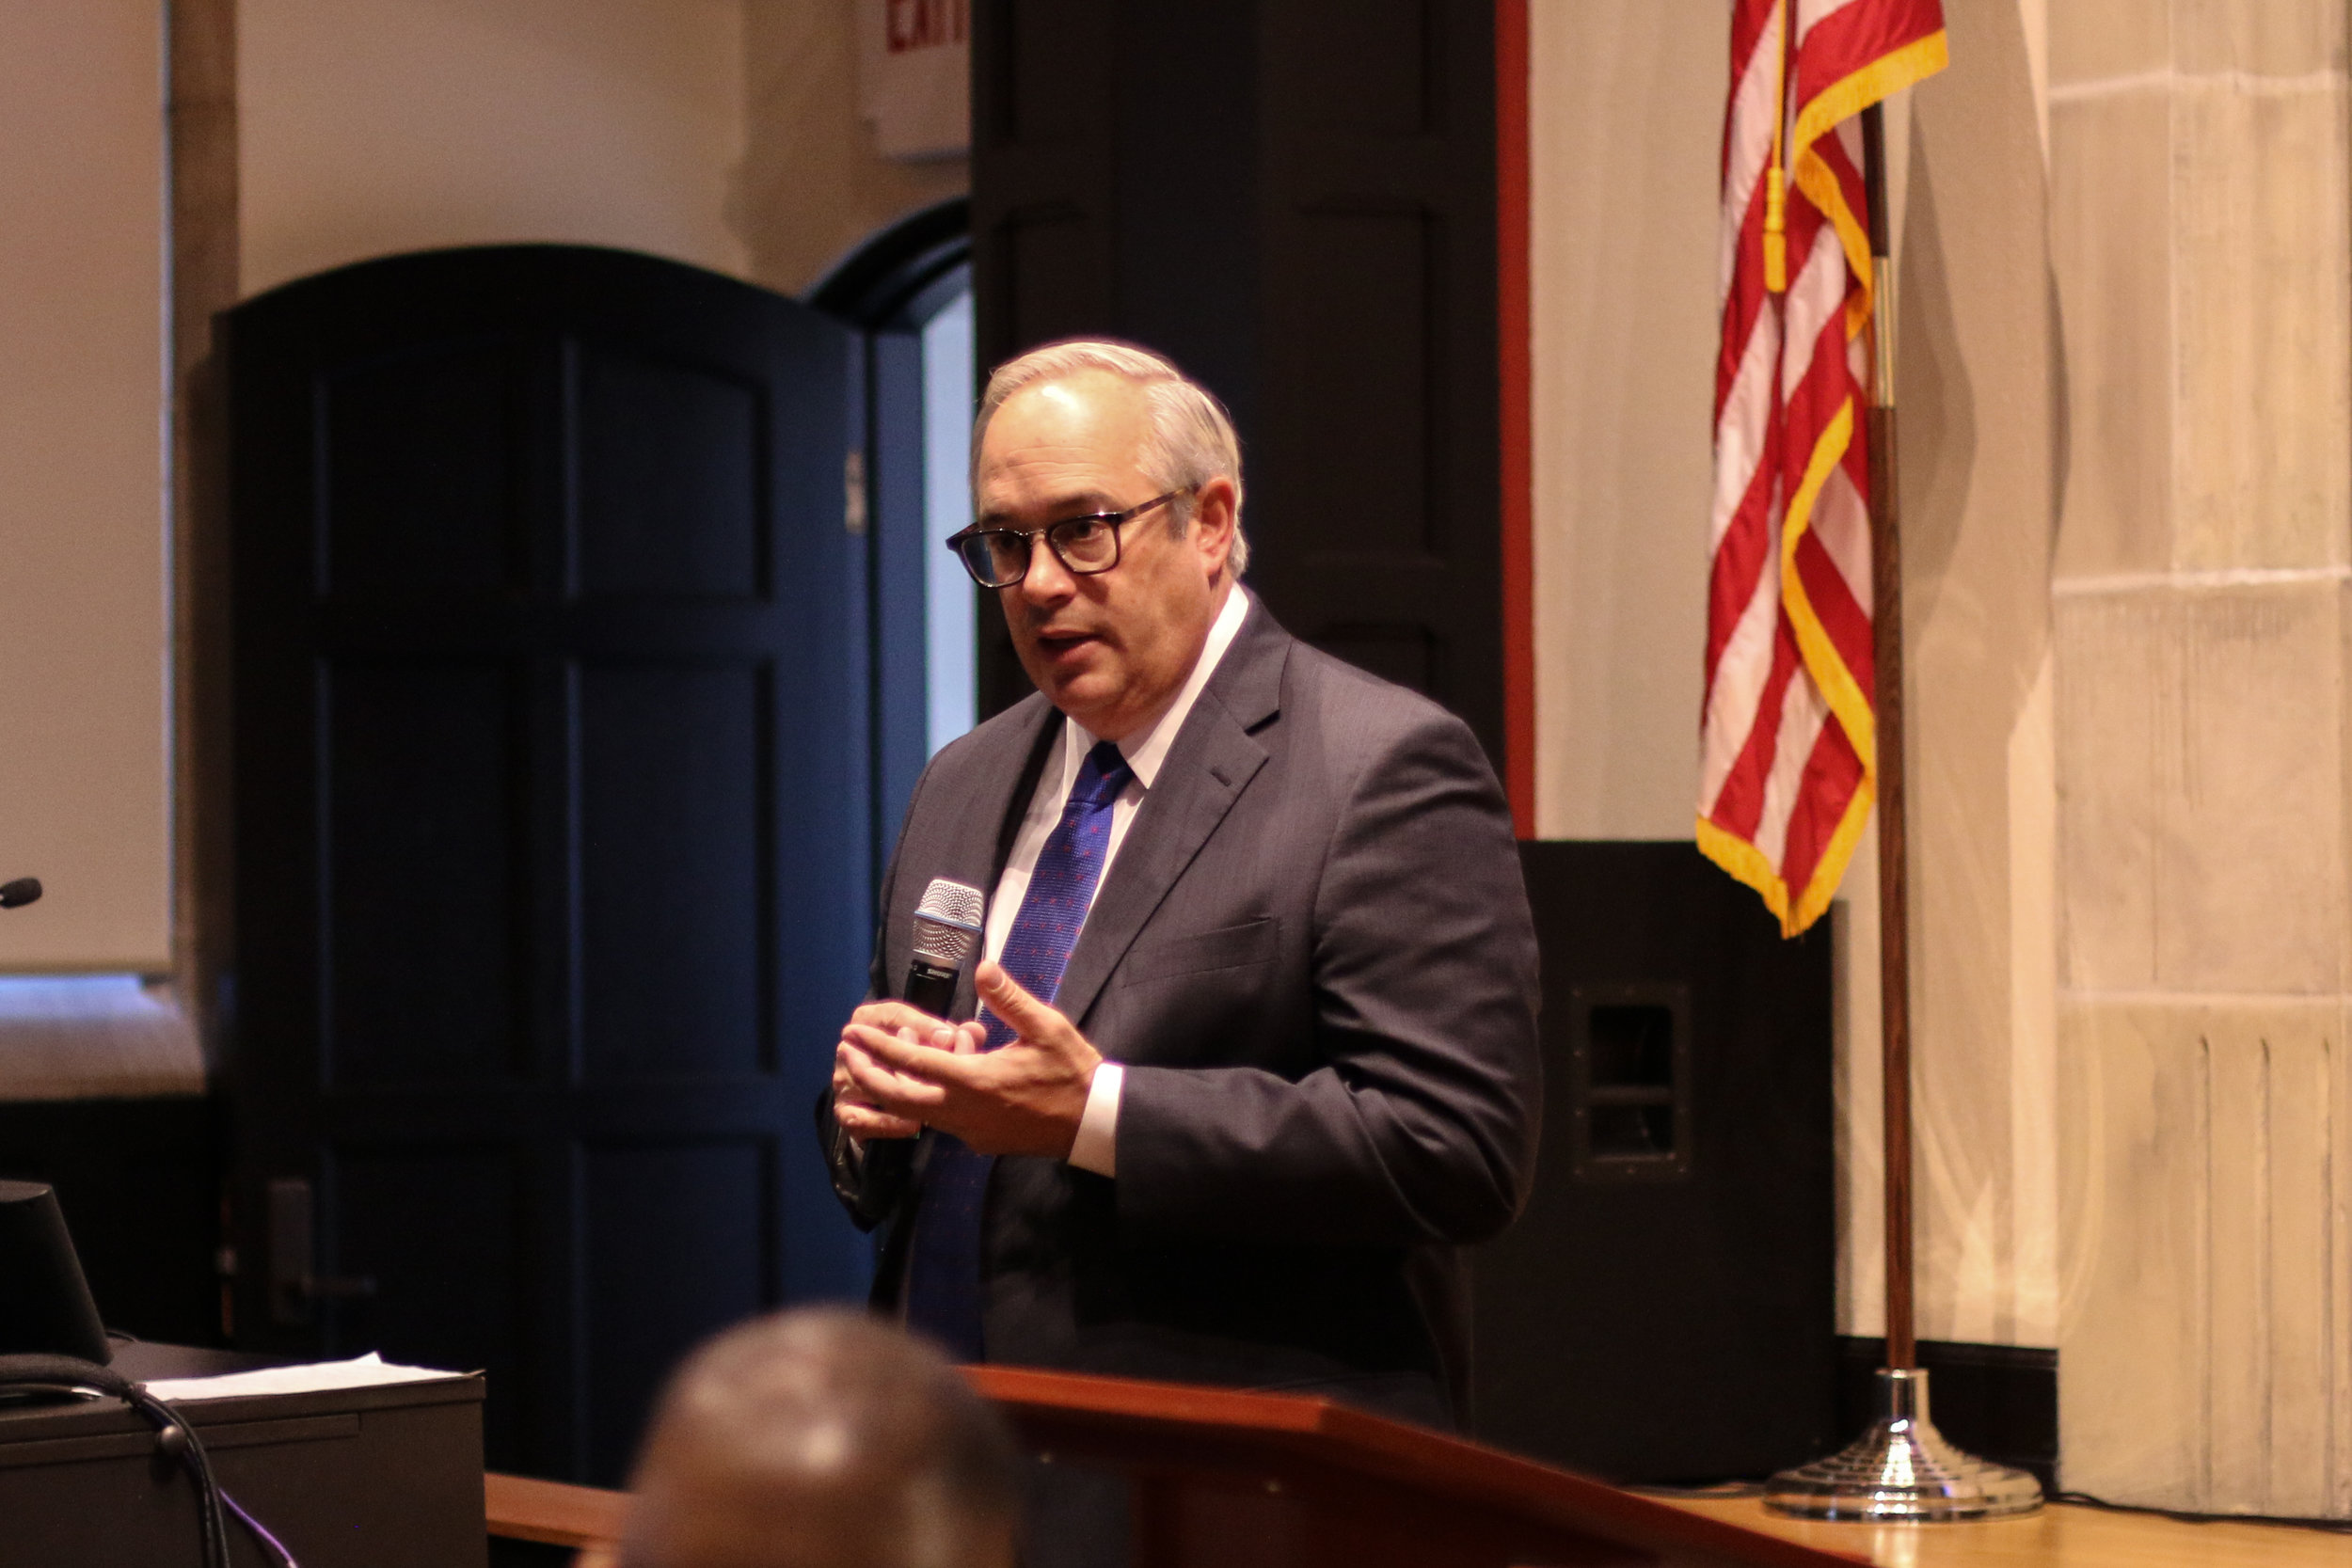 University of Tulsa President Gerry Clancy addressed the international students of TU (11/15). Photo by Luke Lau.